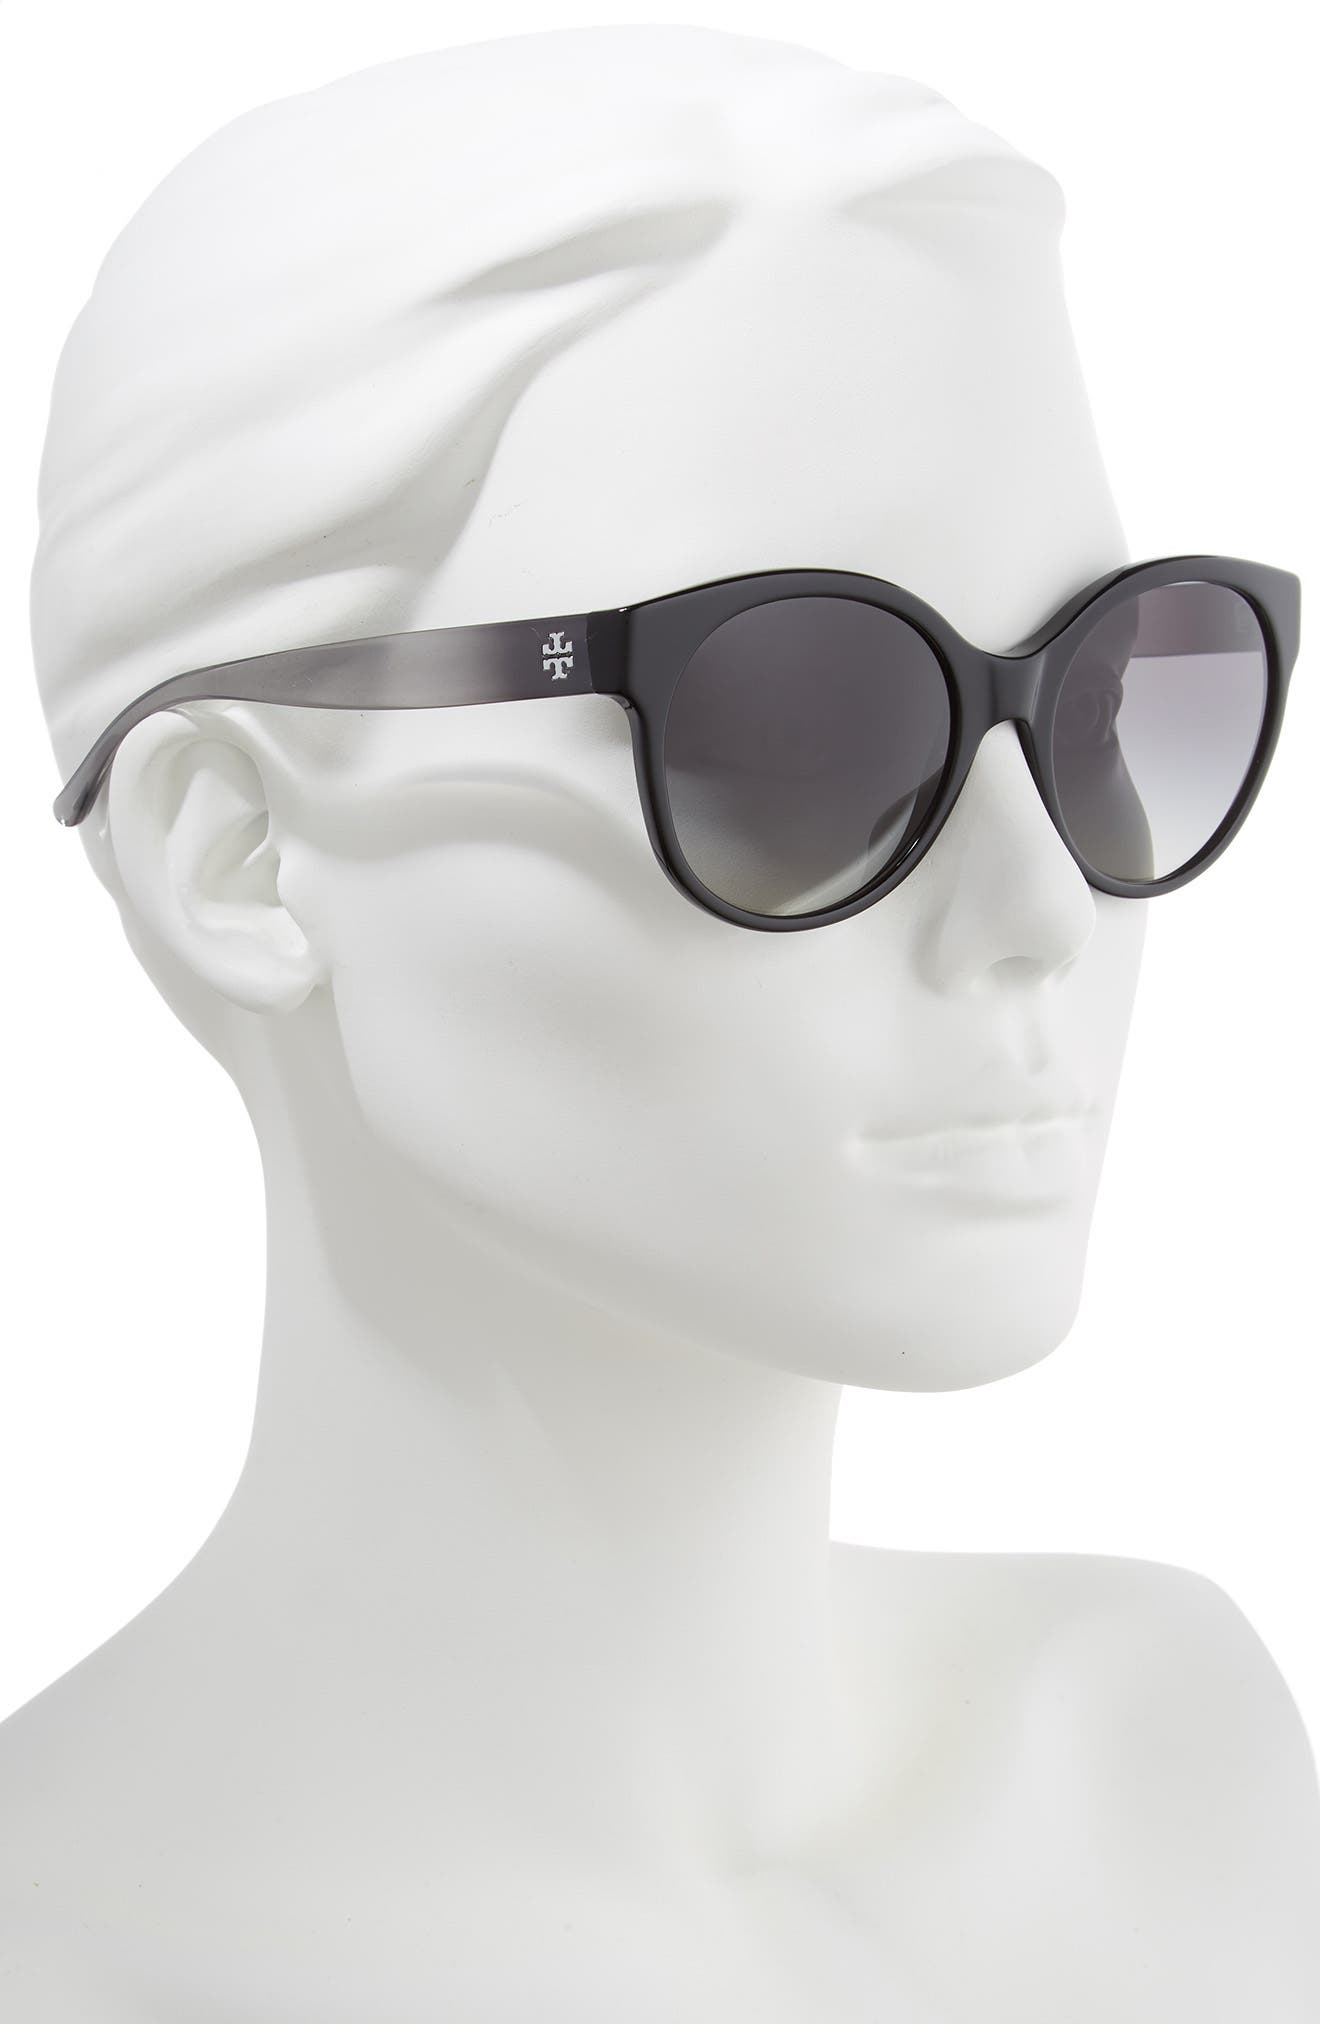 TORY BURCH, Stacked T 55mm Round Sunglasses, Alternate thumbnail 2, color, BLACK GRADIENT